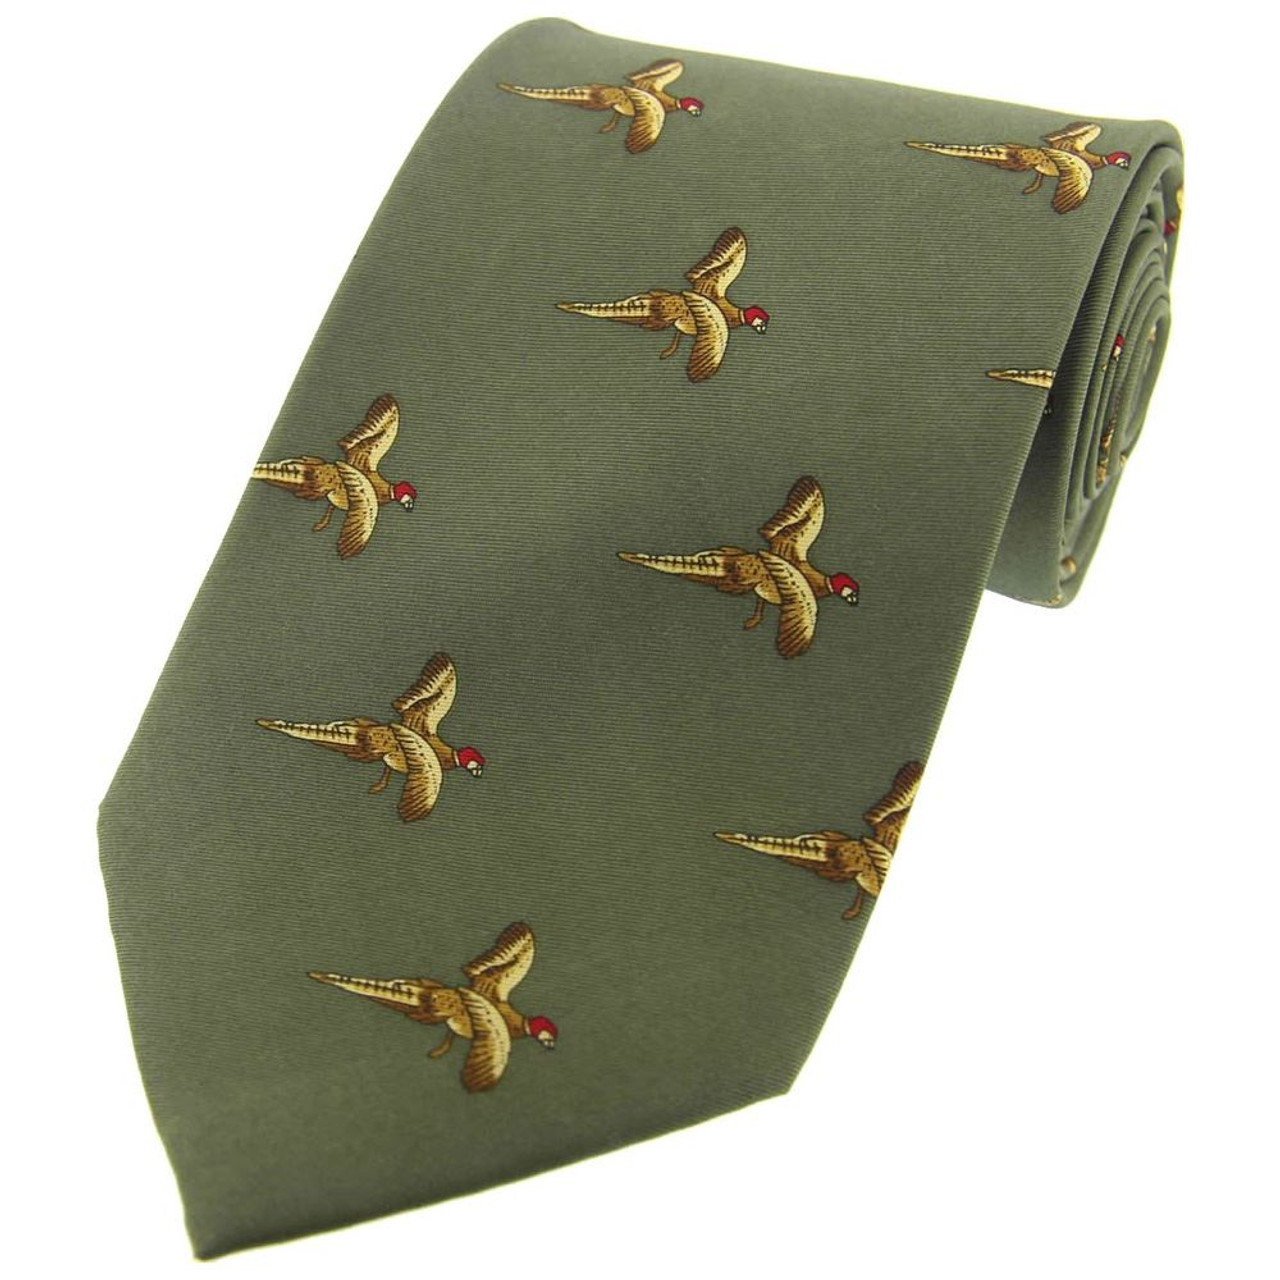 Heritage 1845 Silk Tie Flying Pheasants Country Green